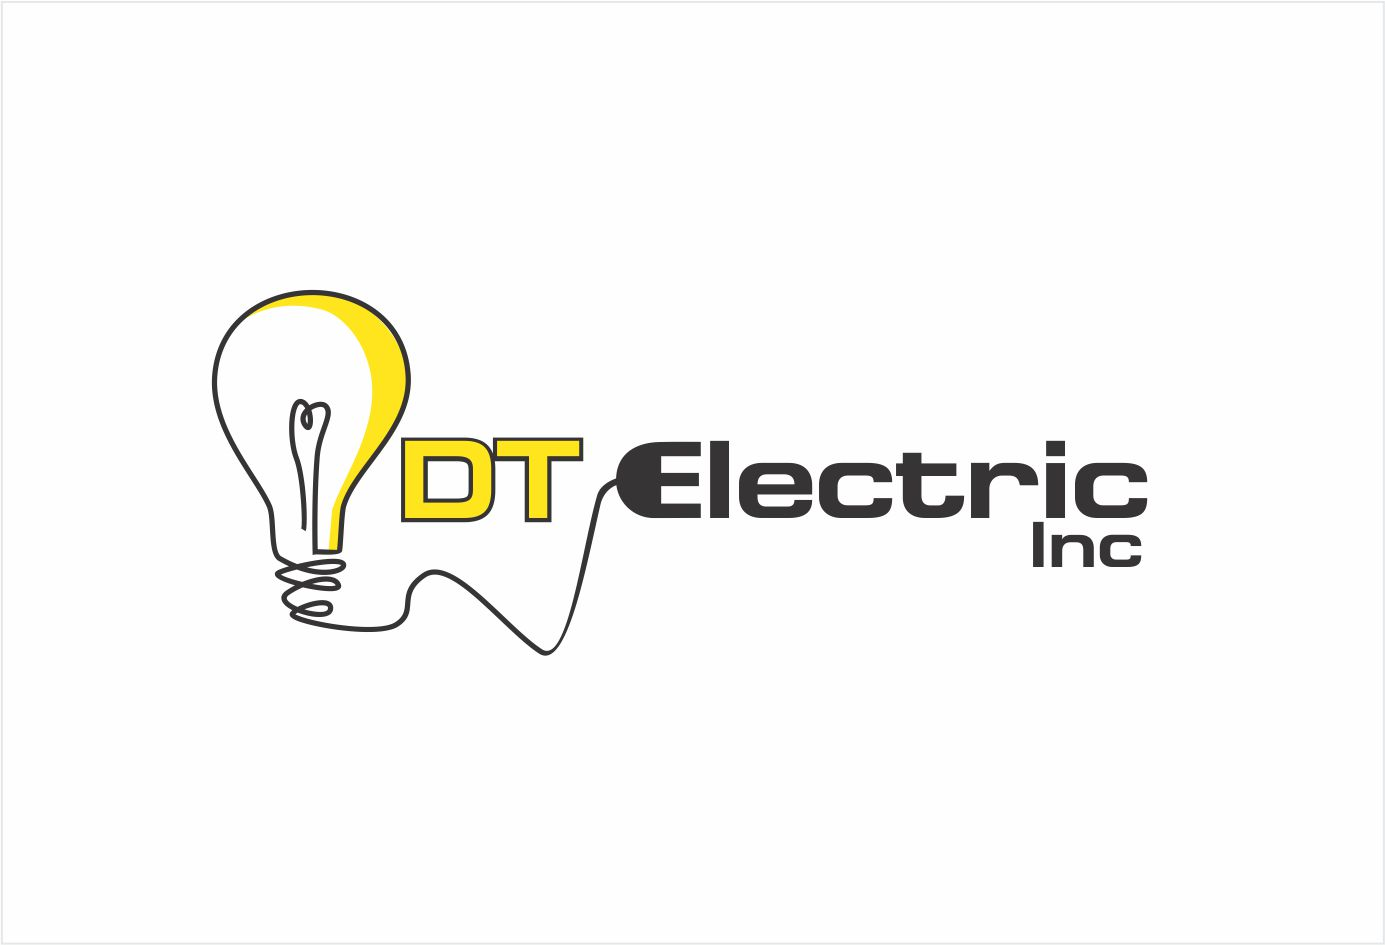 Contractor Logo Design For Dt Electric Inc By Hih7